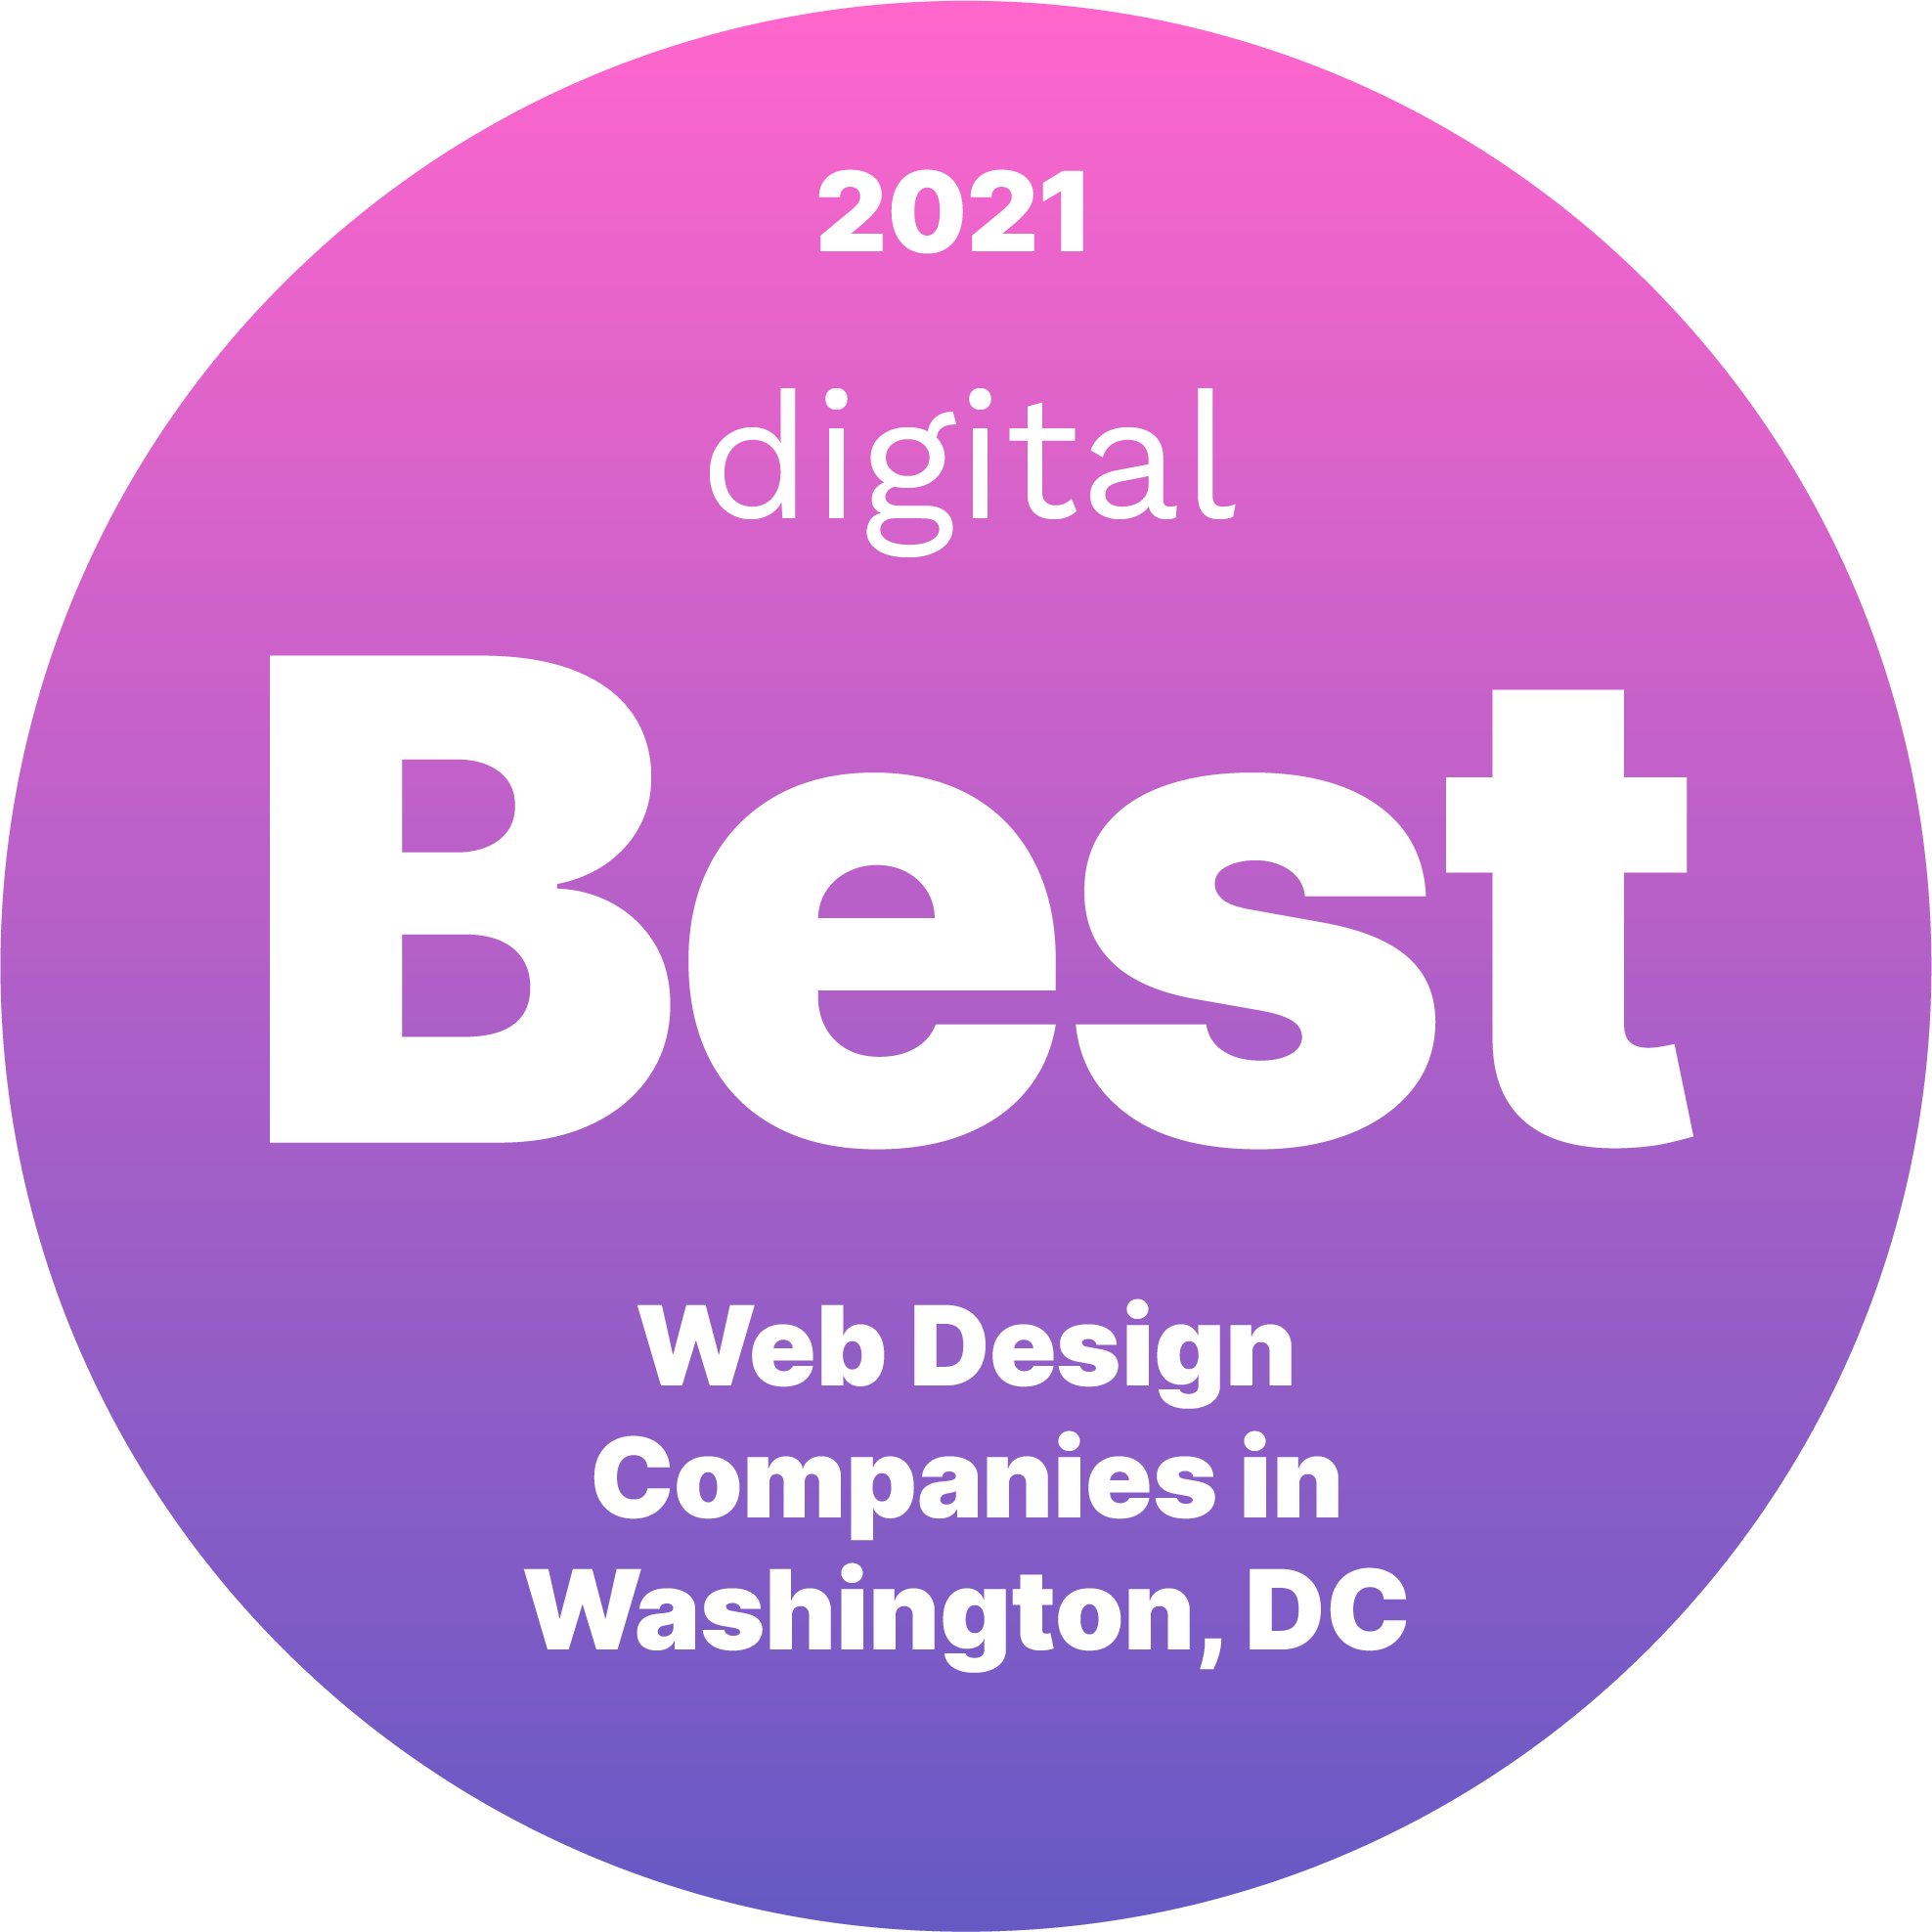 Ask the Egghead, Inc. Named Best Web Design Firm in Washington DC by Digital.com